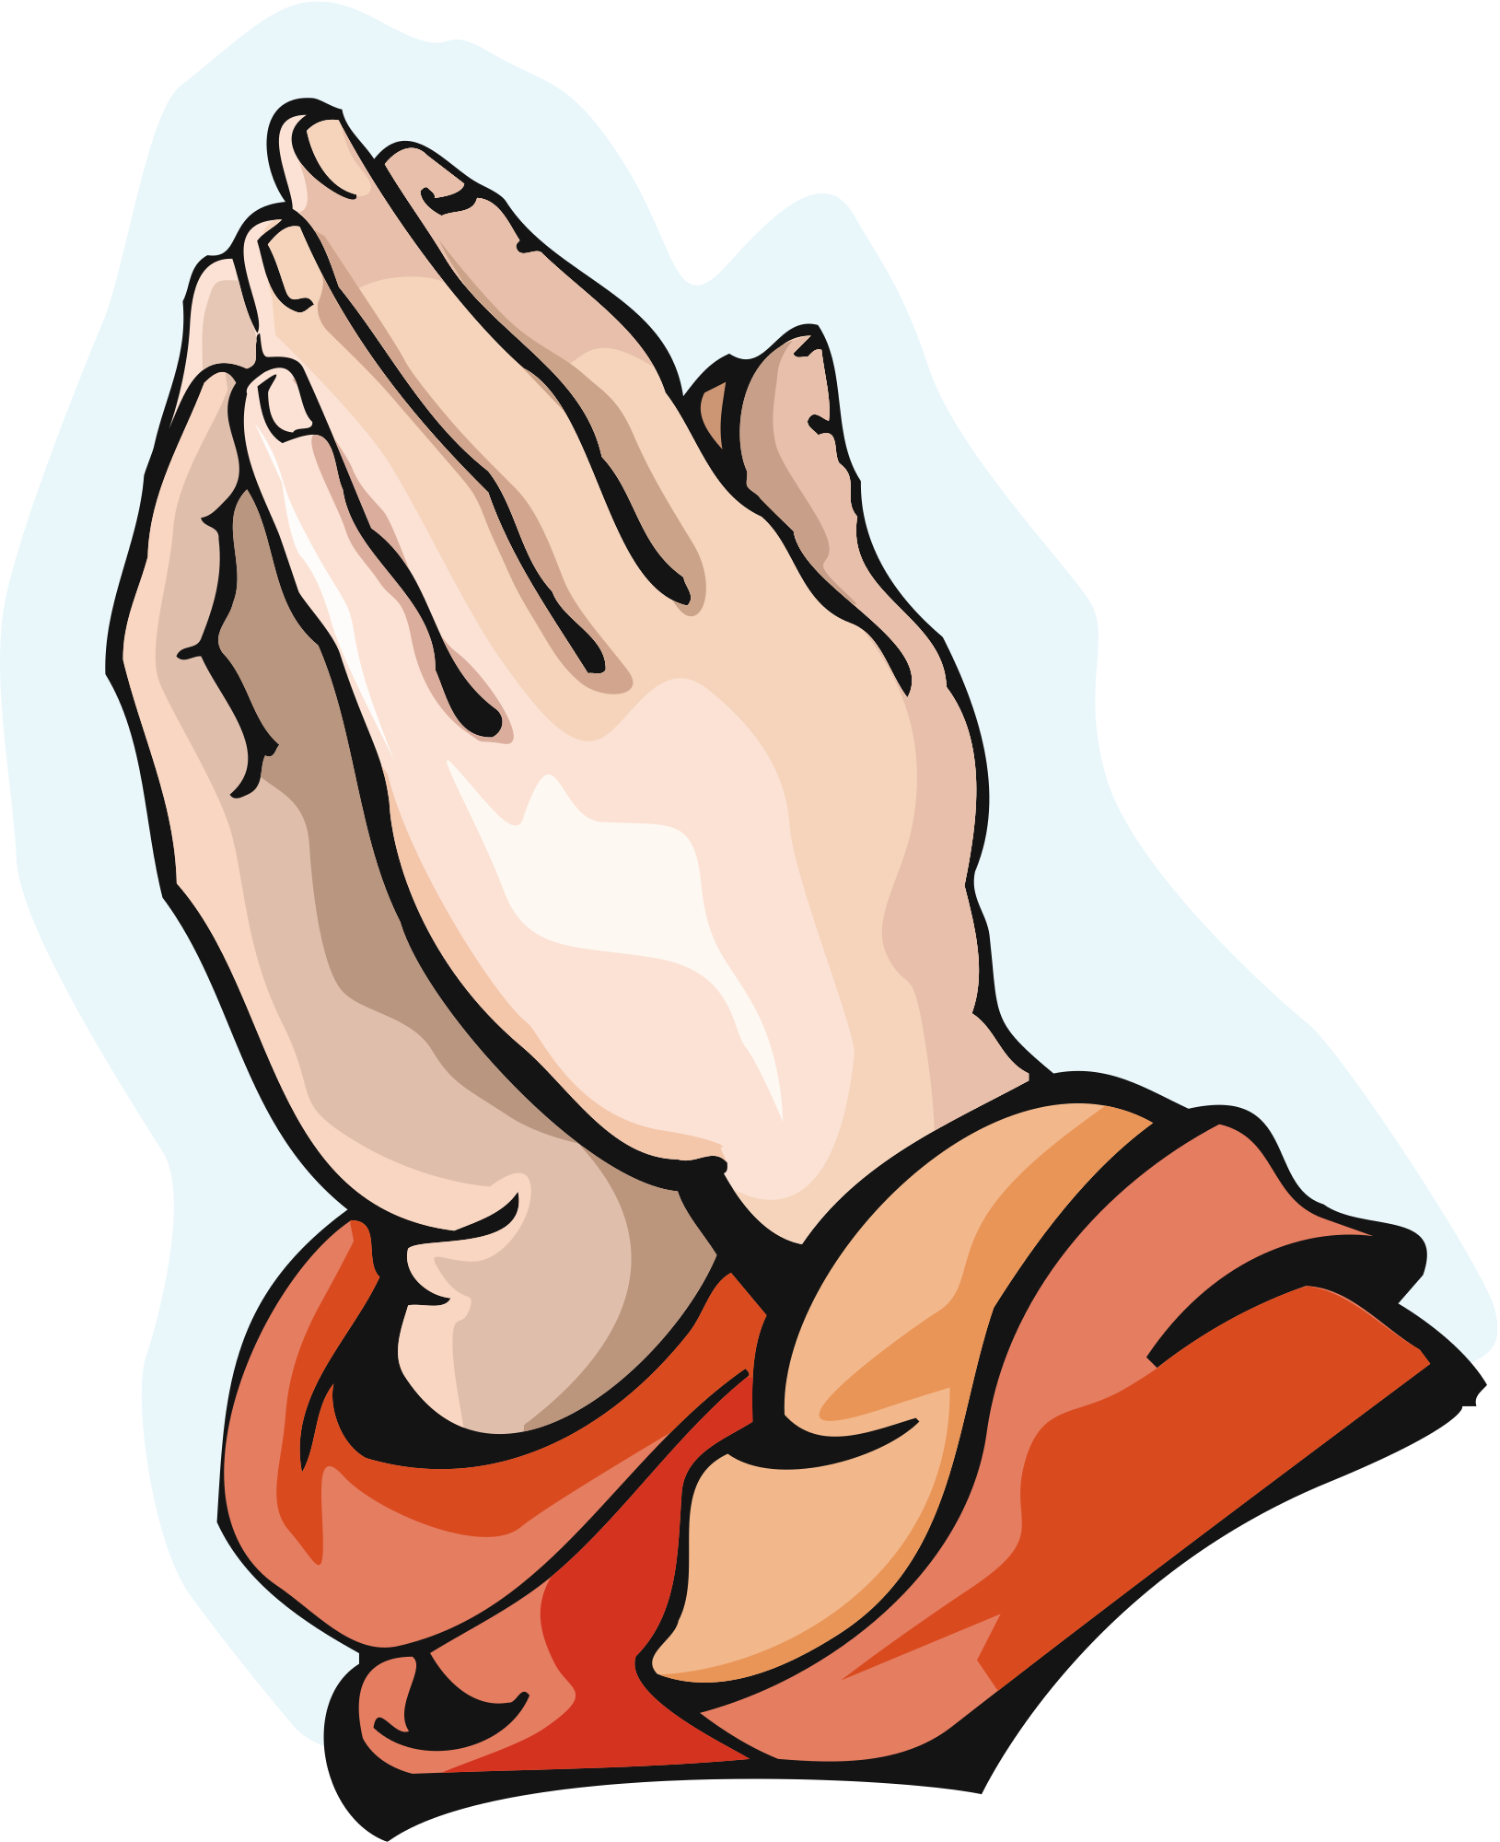 Hand clipart pray. Praying hands cartoon prayer